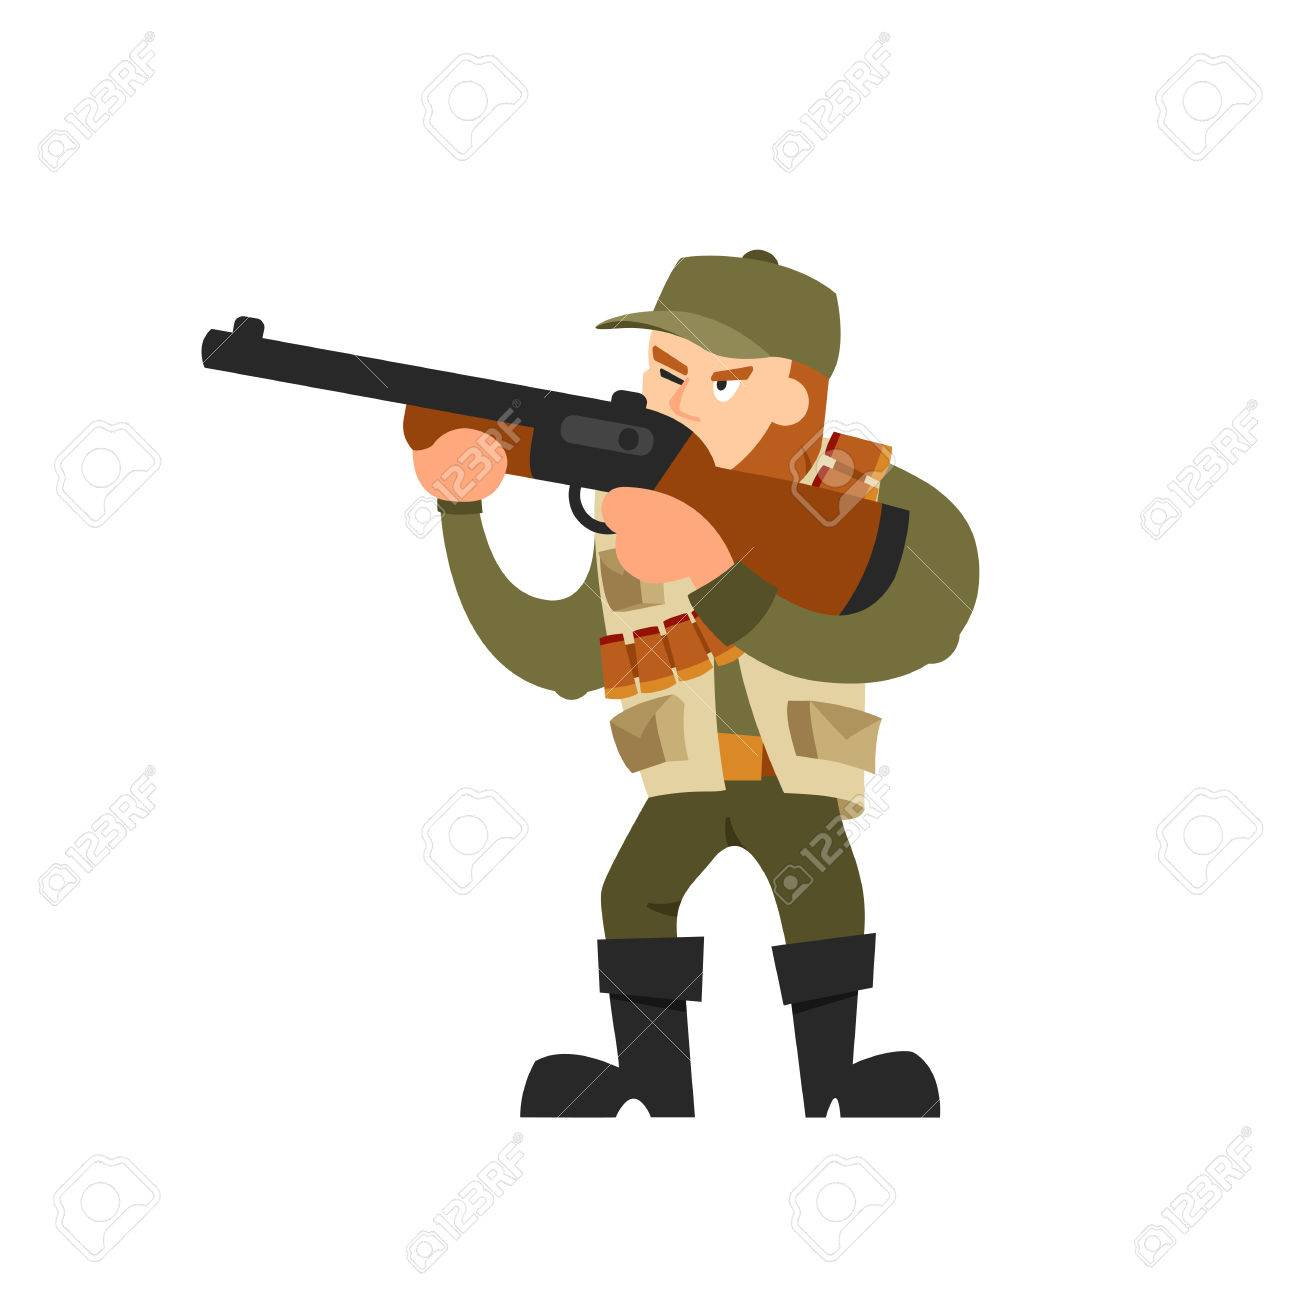 Hunter vector illustration. Hunter isolated on white background. Hunter vector icon illustration. Hunter isolated vector. Hunter silhouette. Hunter in cartoon style. Hunter with a gun and ammunition. - 60009700